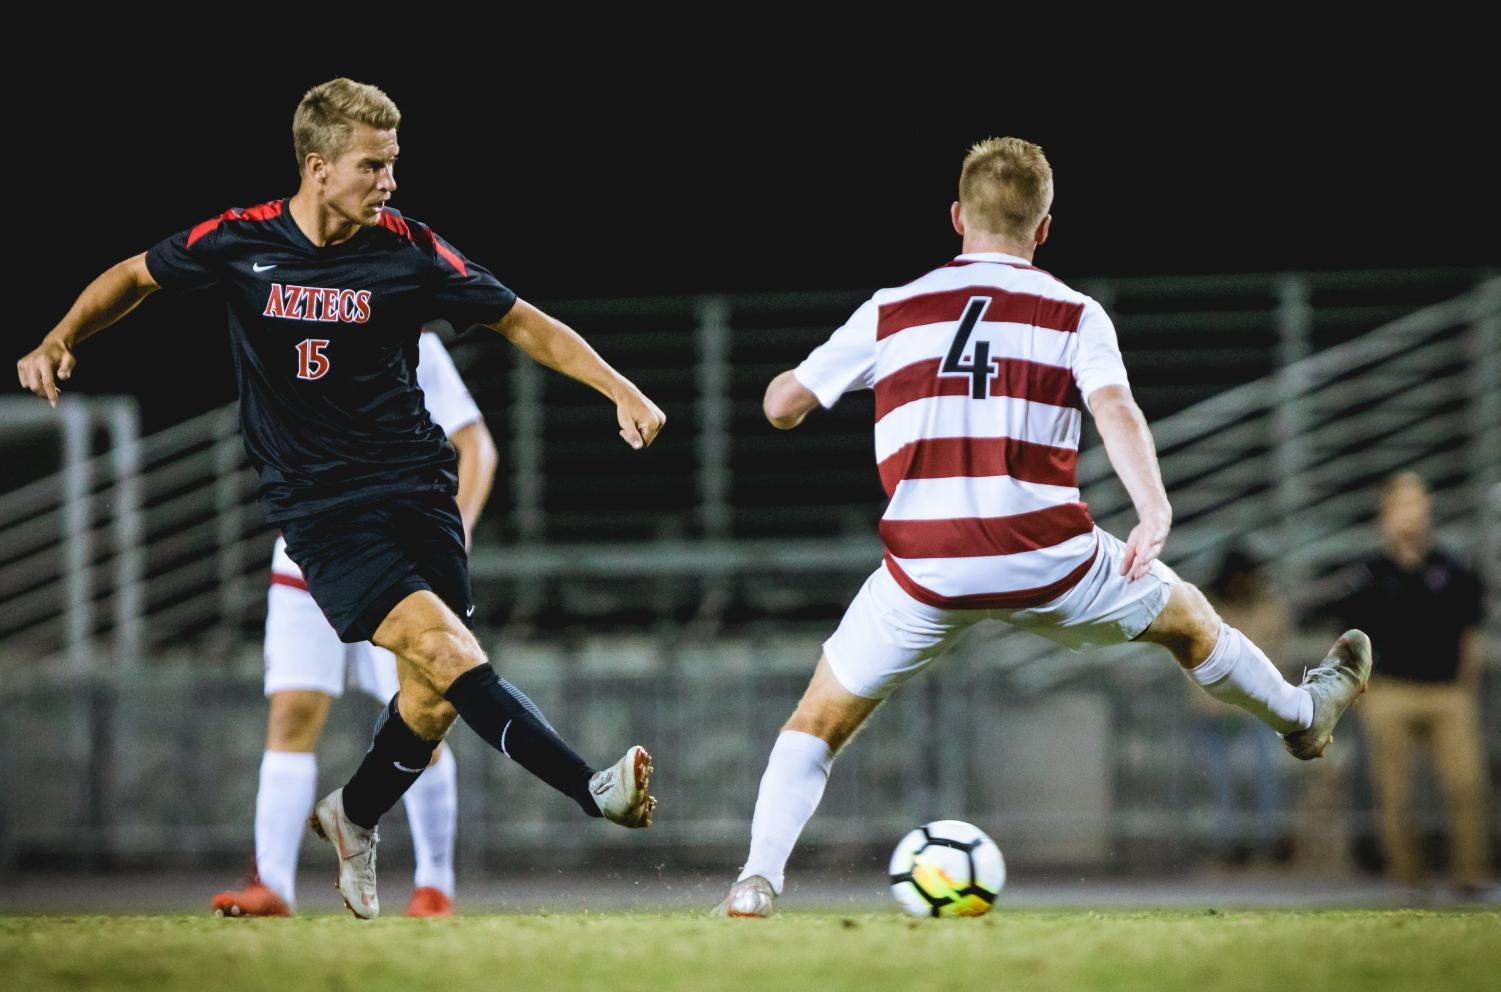 Junior midfielder Hampus Bergdahl attempts to kick the ball around a Stanford defender during the Aztecs 2-0 loss to the Cardinal on Nov. 4 at the SDSU Sports Deck.